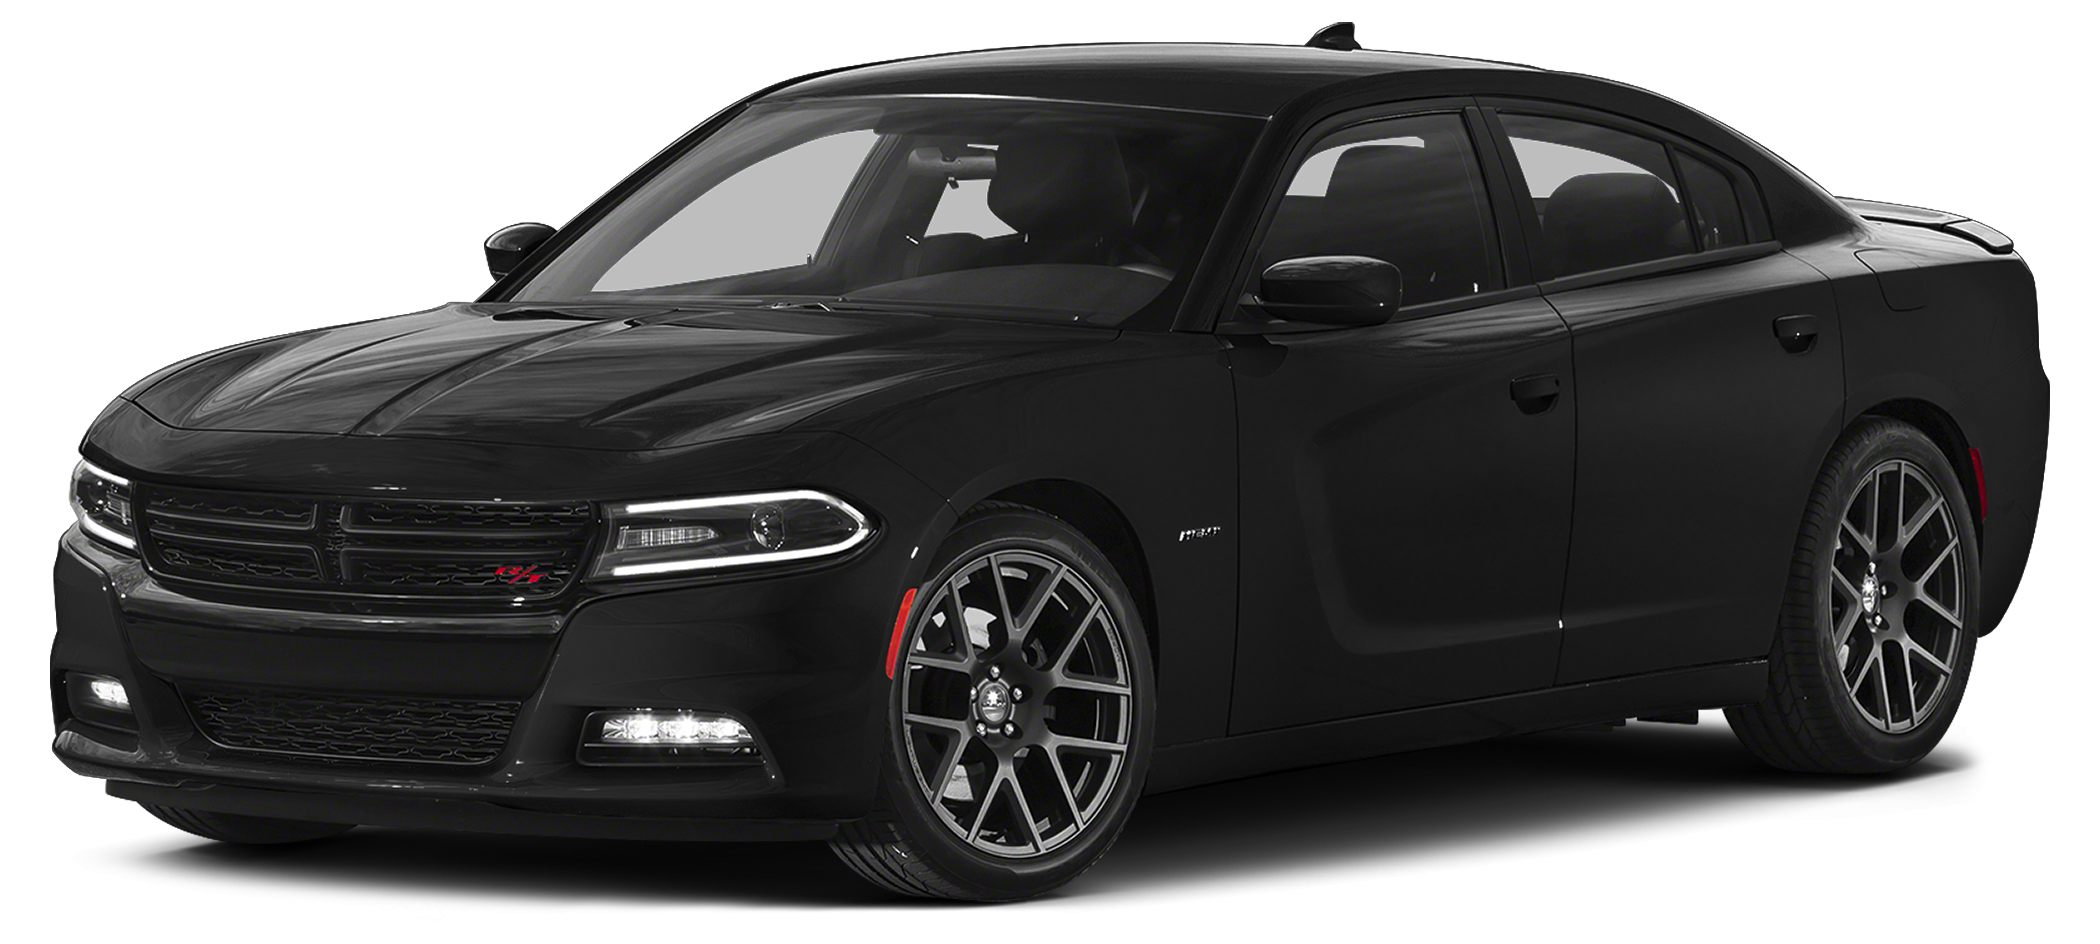 2015 Dodge Charger RT DISCLAIMER We are excited to offer this vehicle to you but it is currently